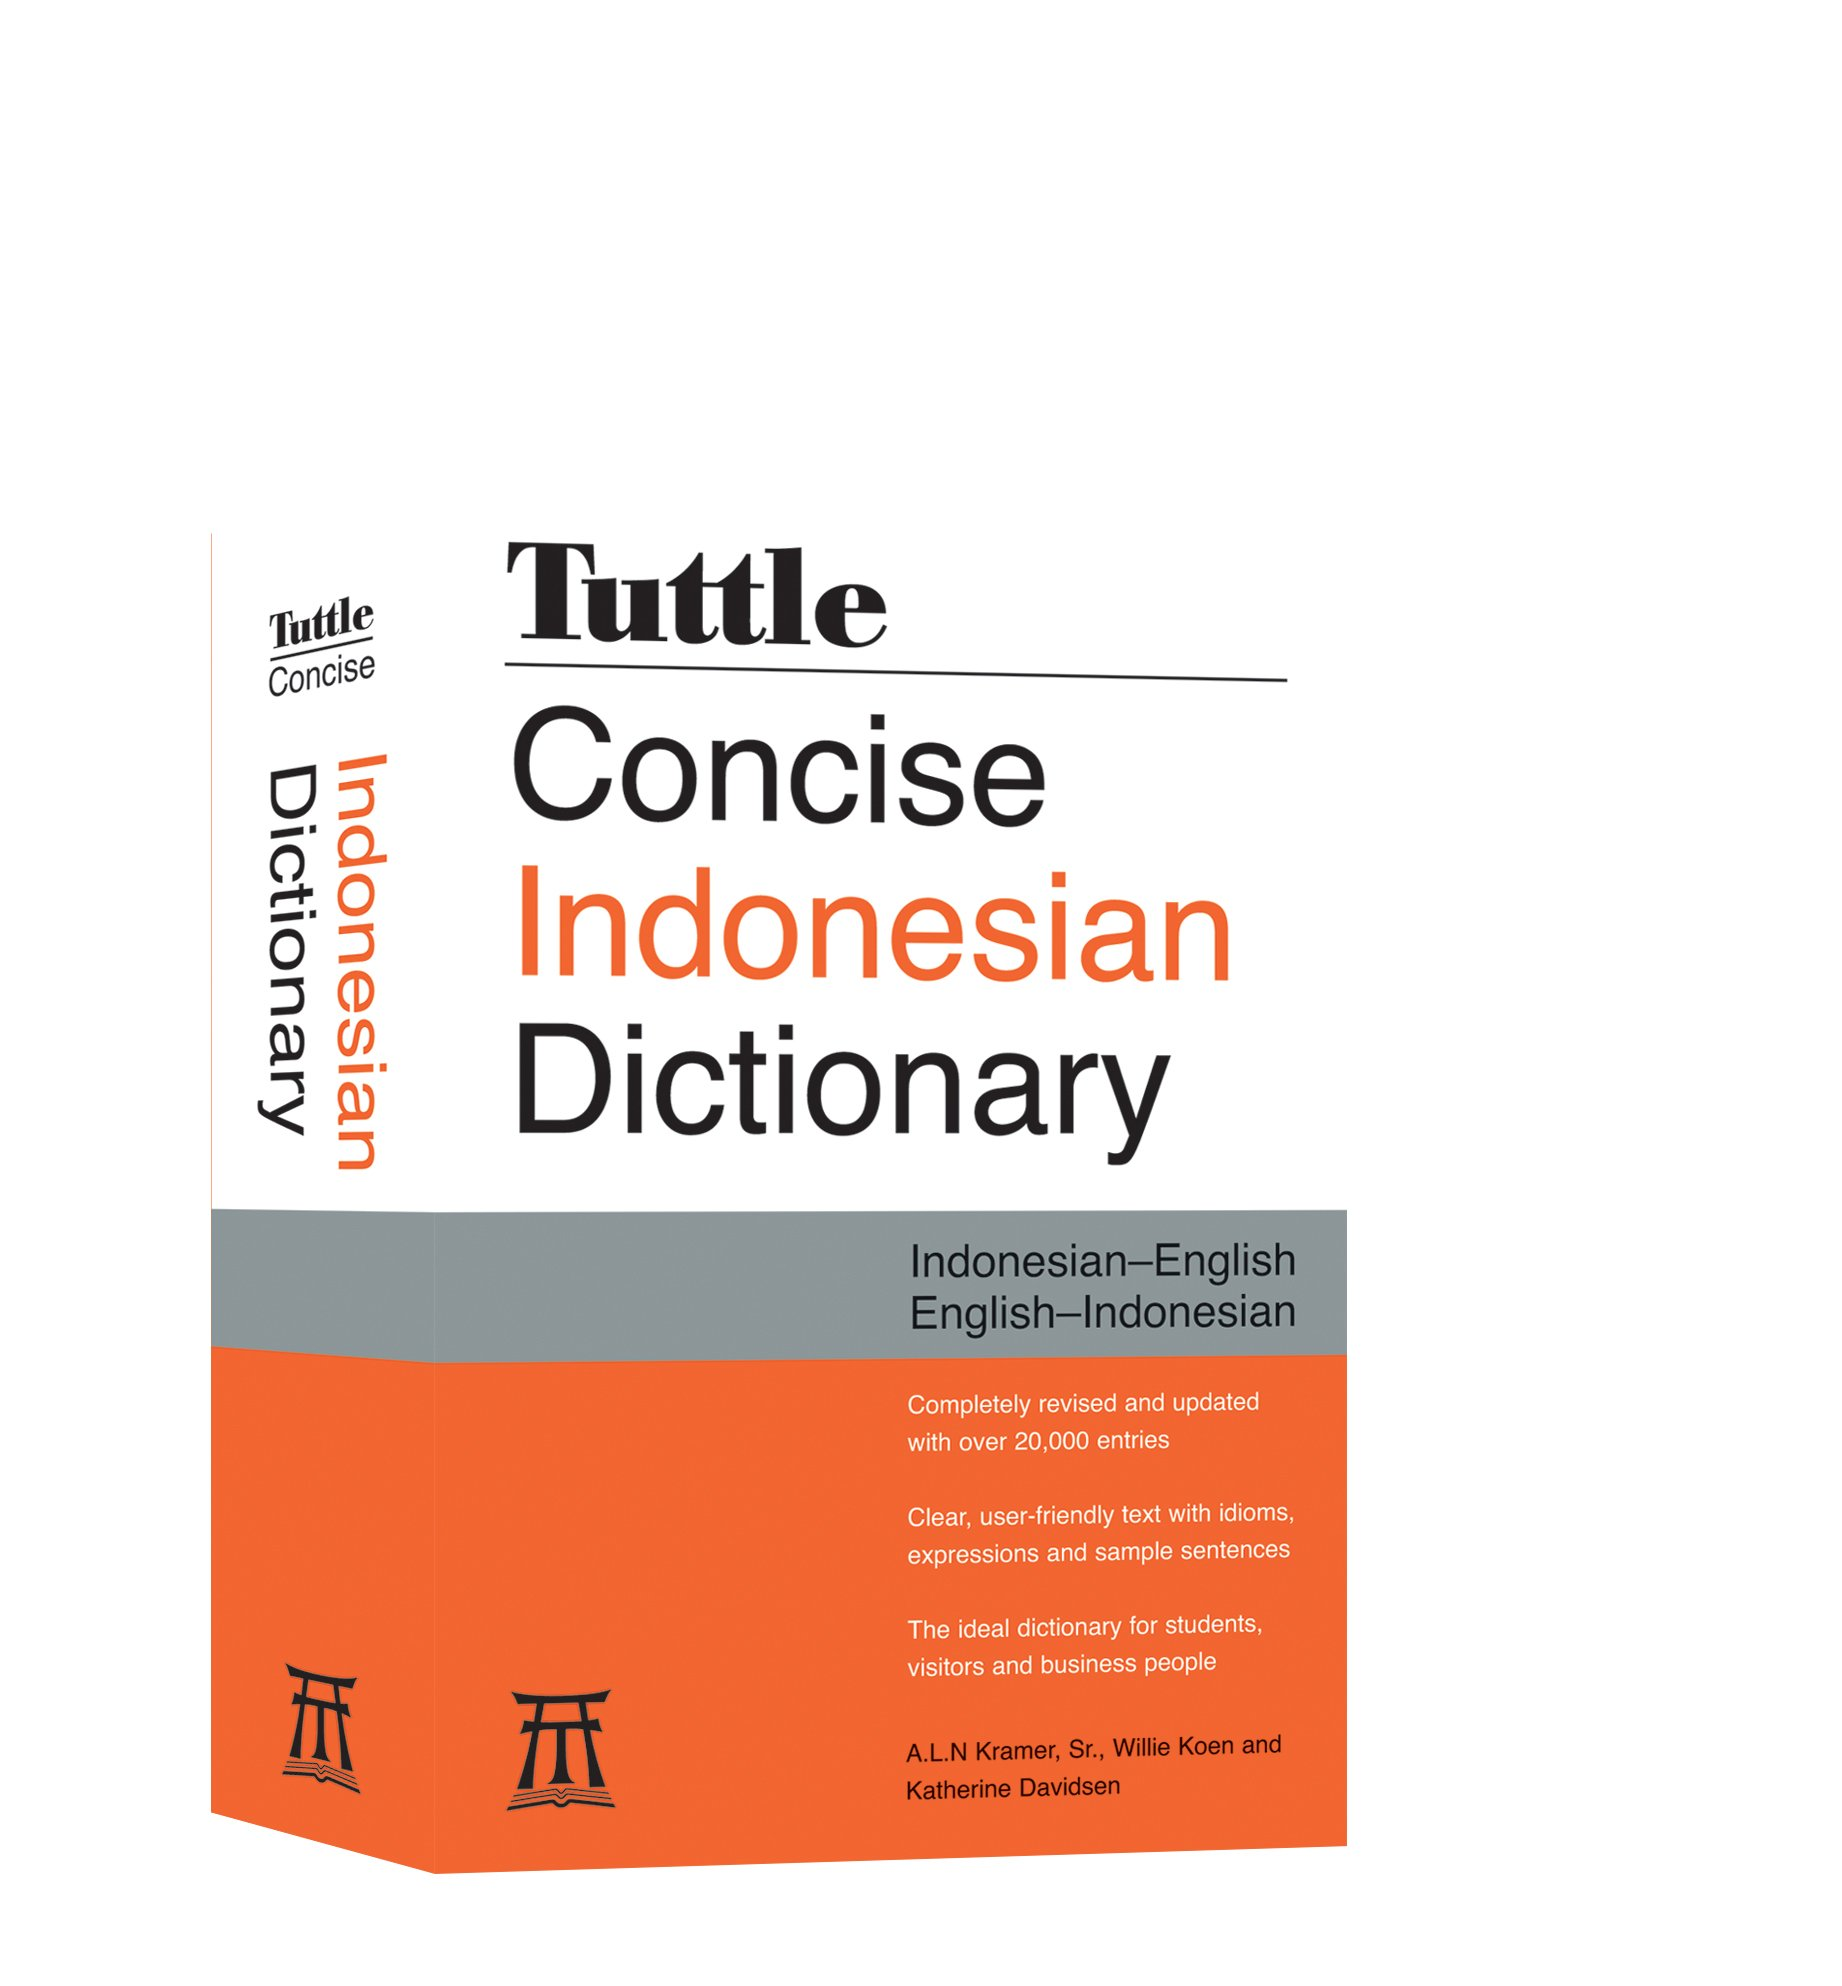 Tuttle Concise Indonesian Dictionary: Indonesian-English English-Indonesian  (Dictionary): Amazon.co.uk: Willie Koen: 9780804837330: Books